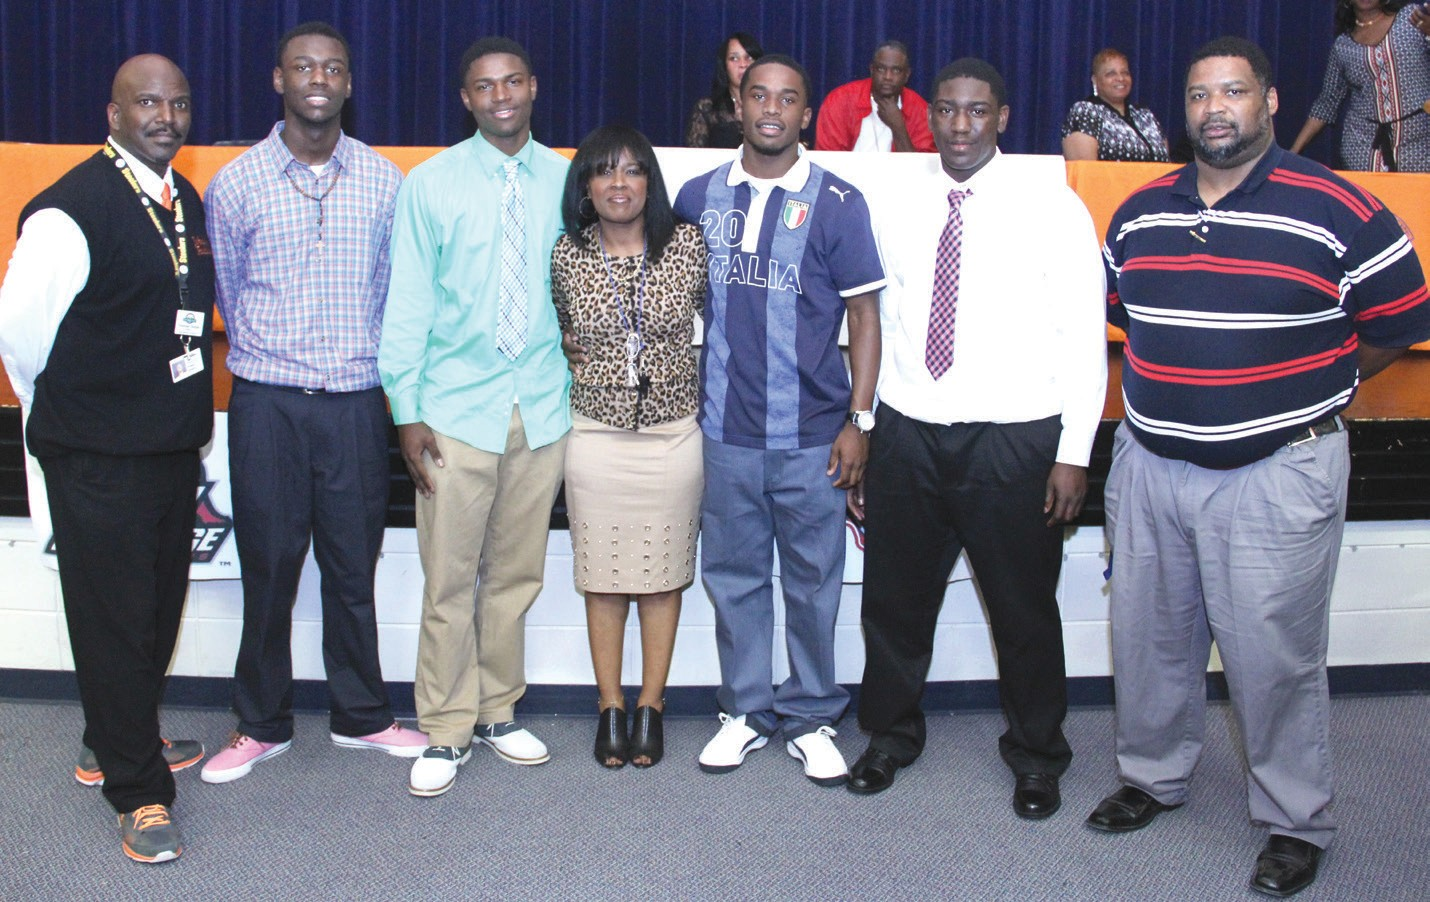 Players are shown with Principal Ms. Ball-Oliver and Football Coaches